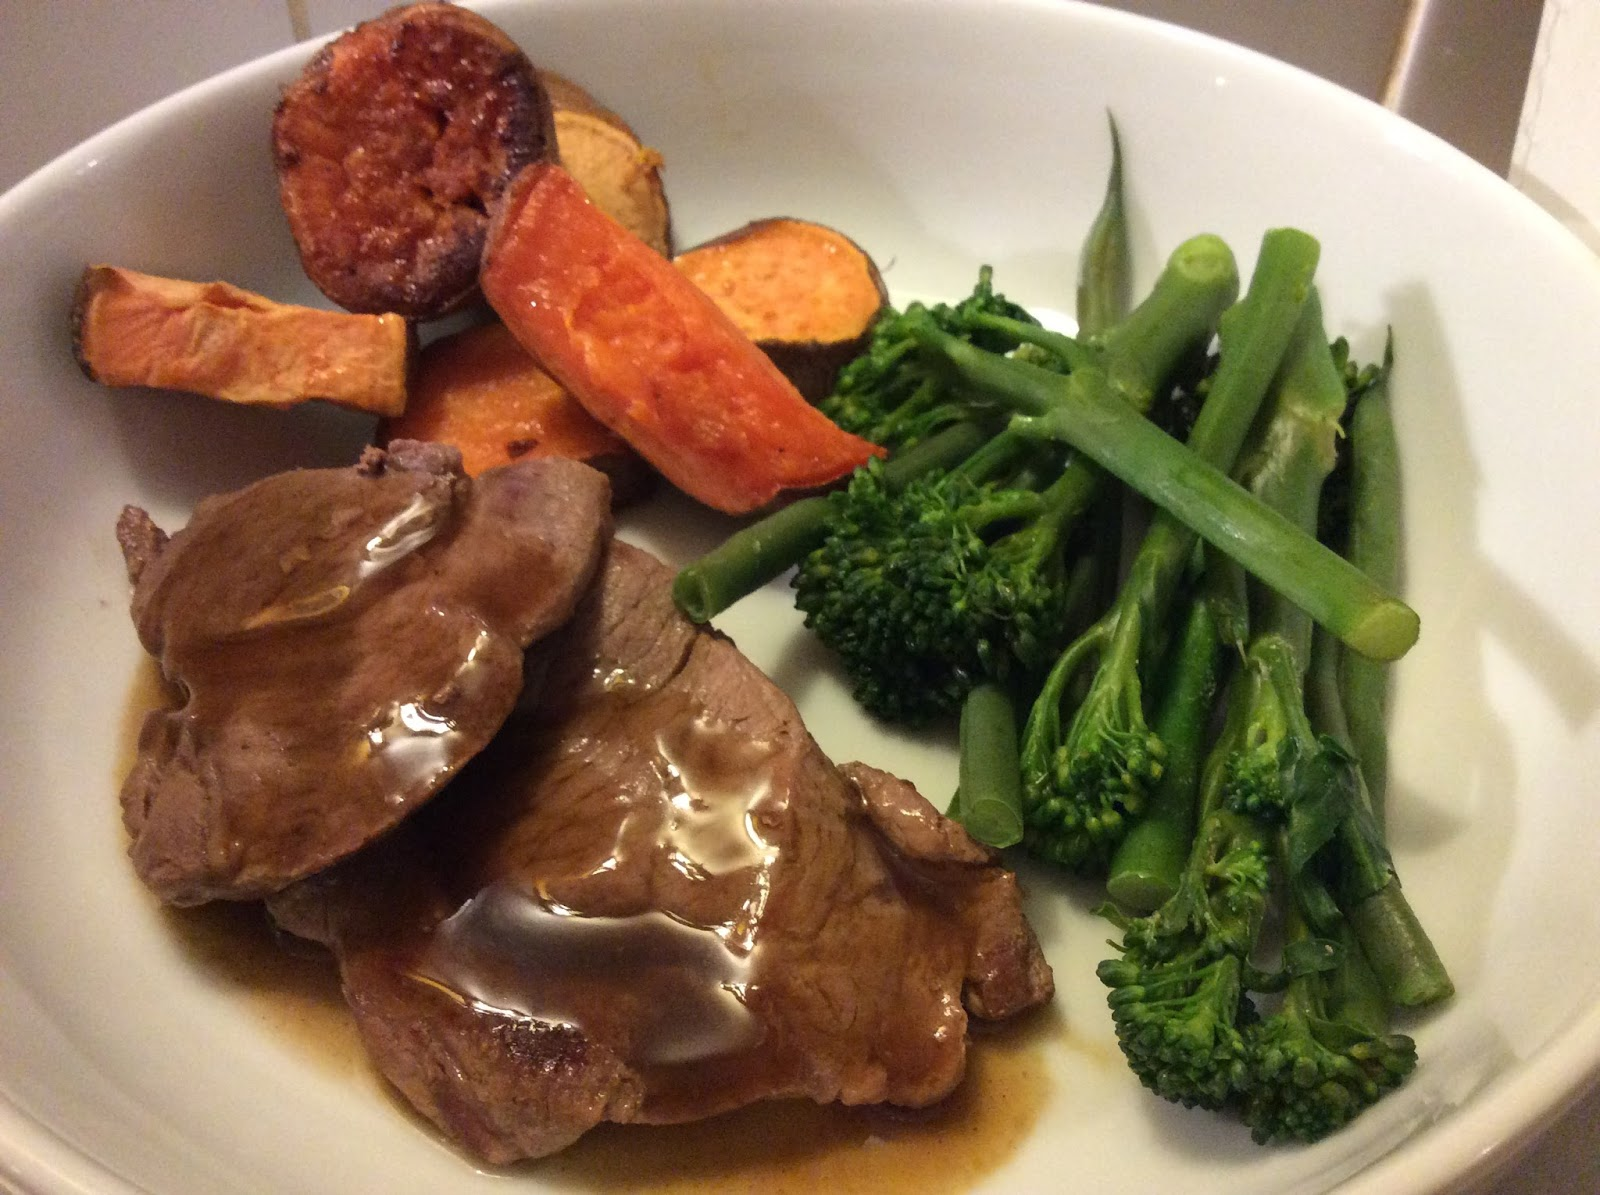 lamb steaks, gravy, veg and sweet potatoes